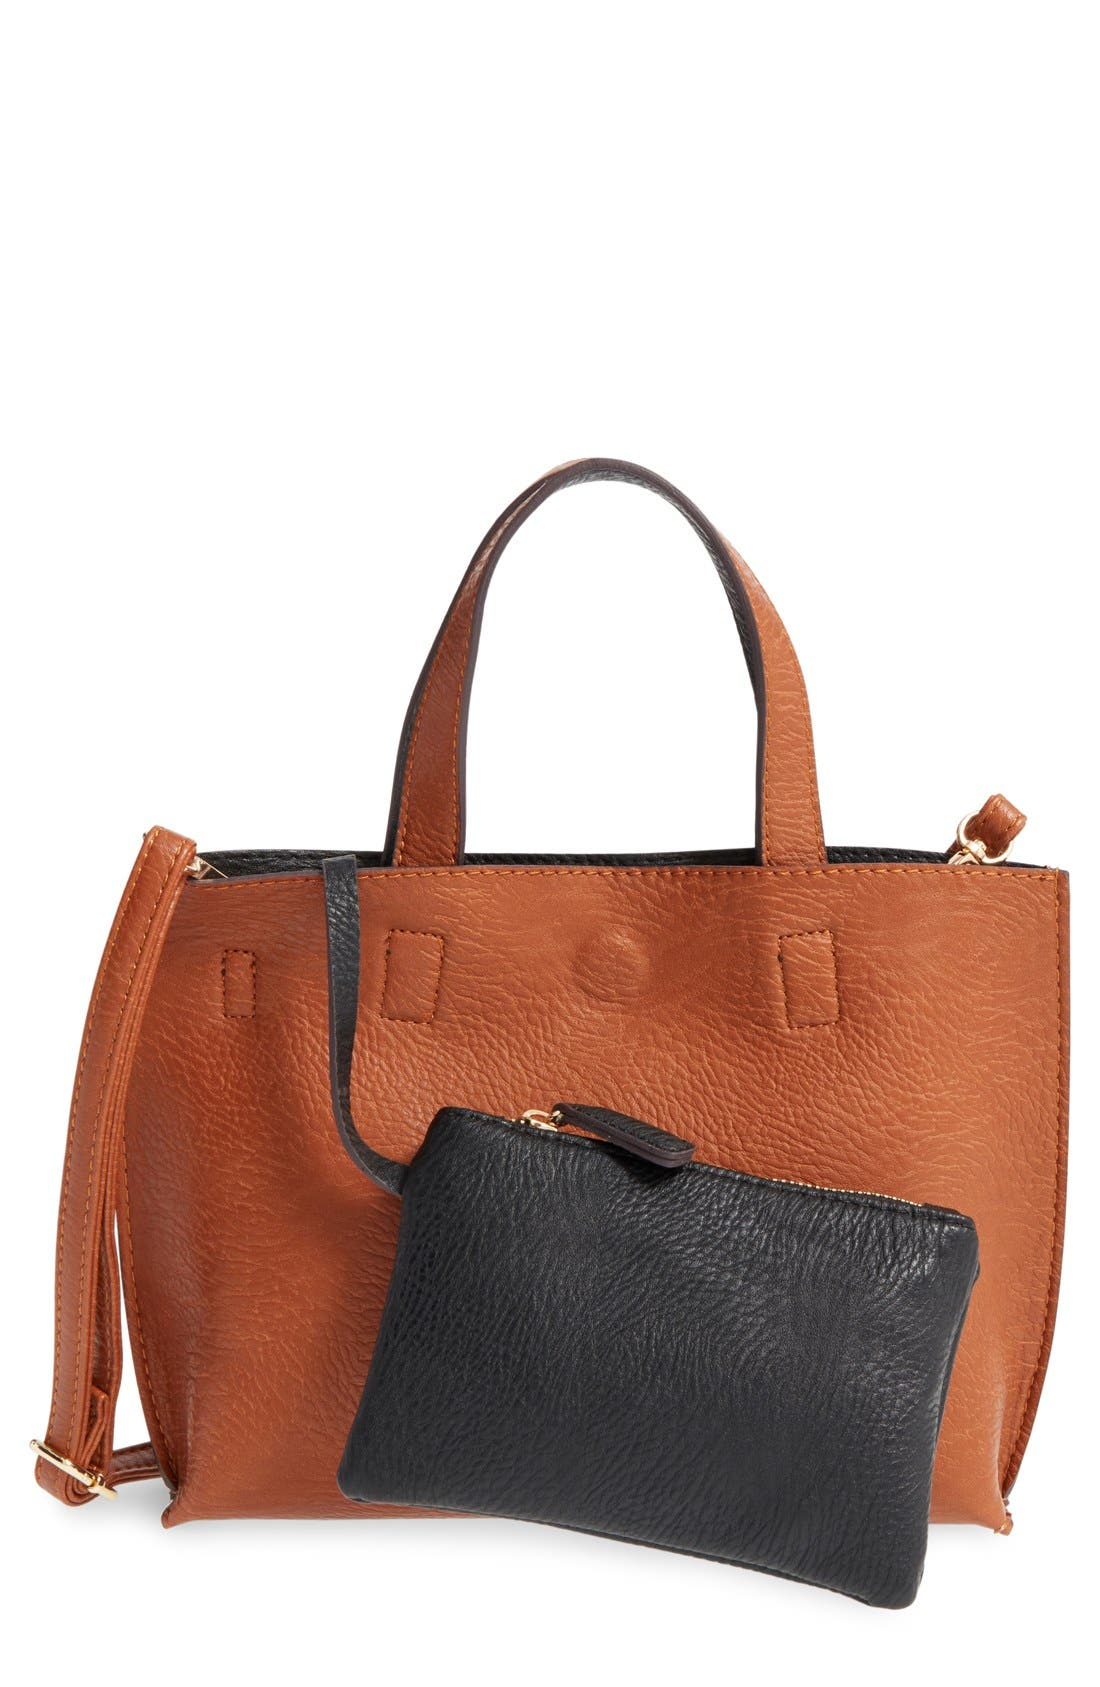 Alternate Image 1 Selected - Street Level Reversible Faux Leather Crossbody Mini Tote & Wristlet